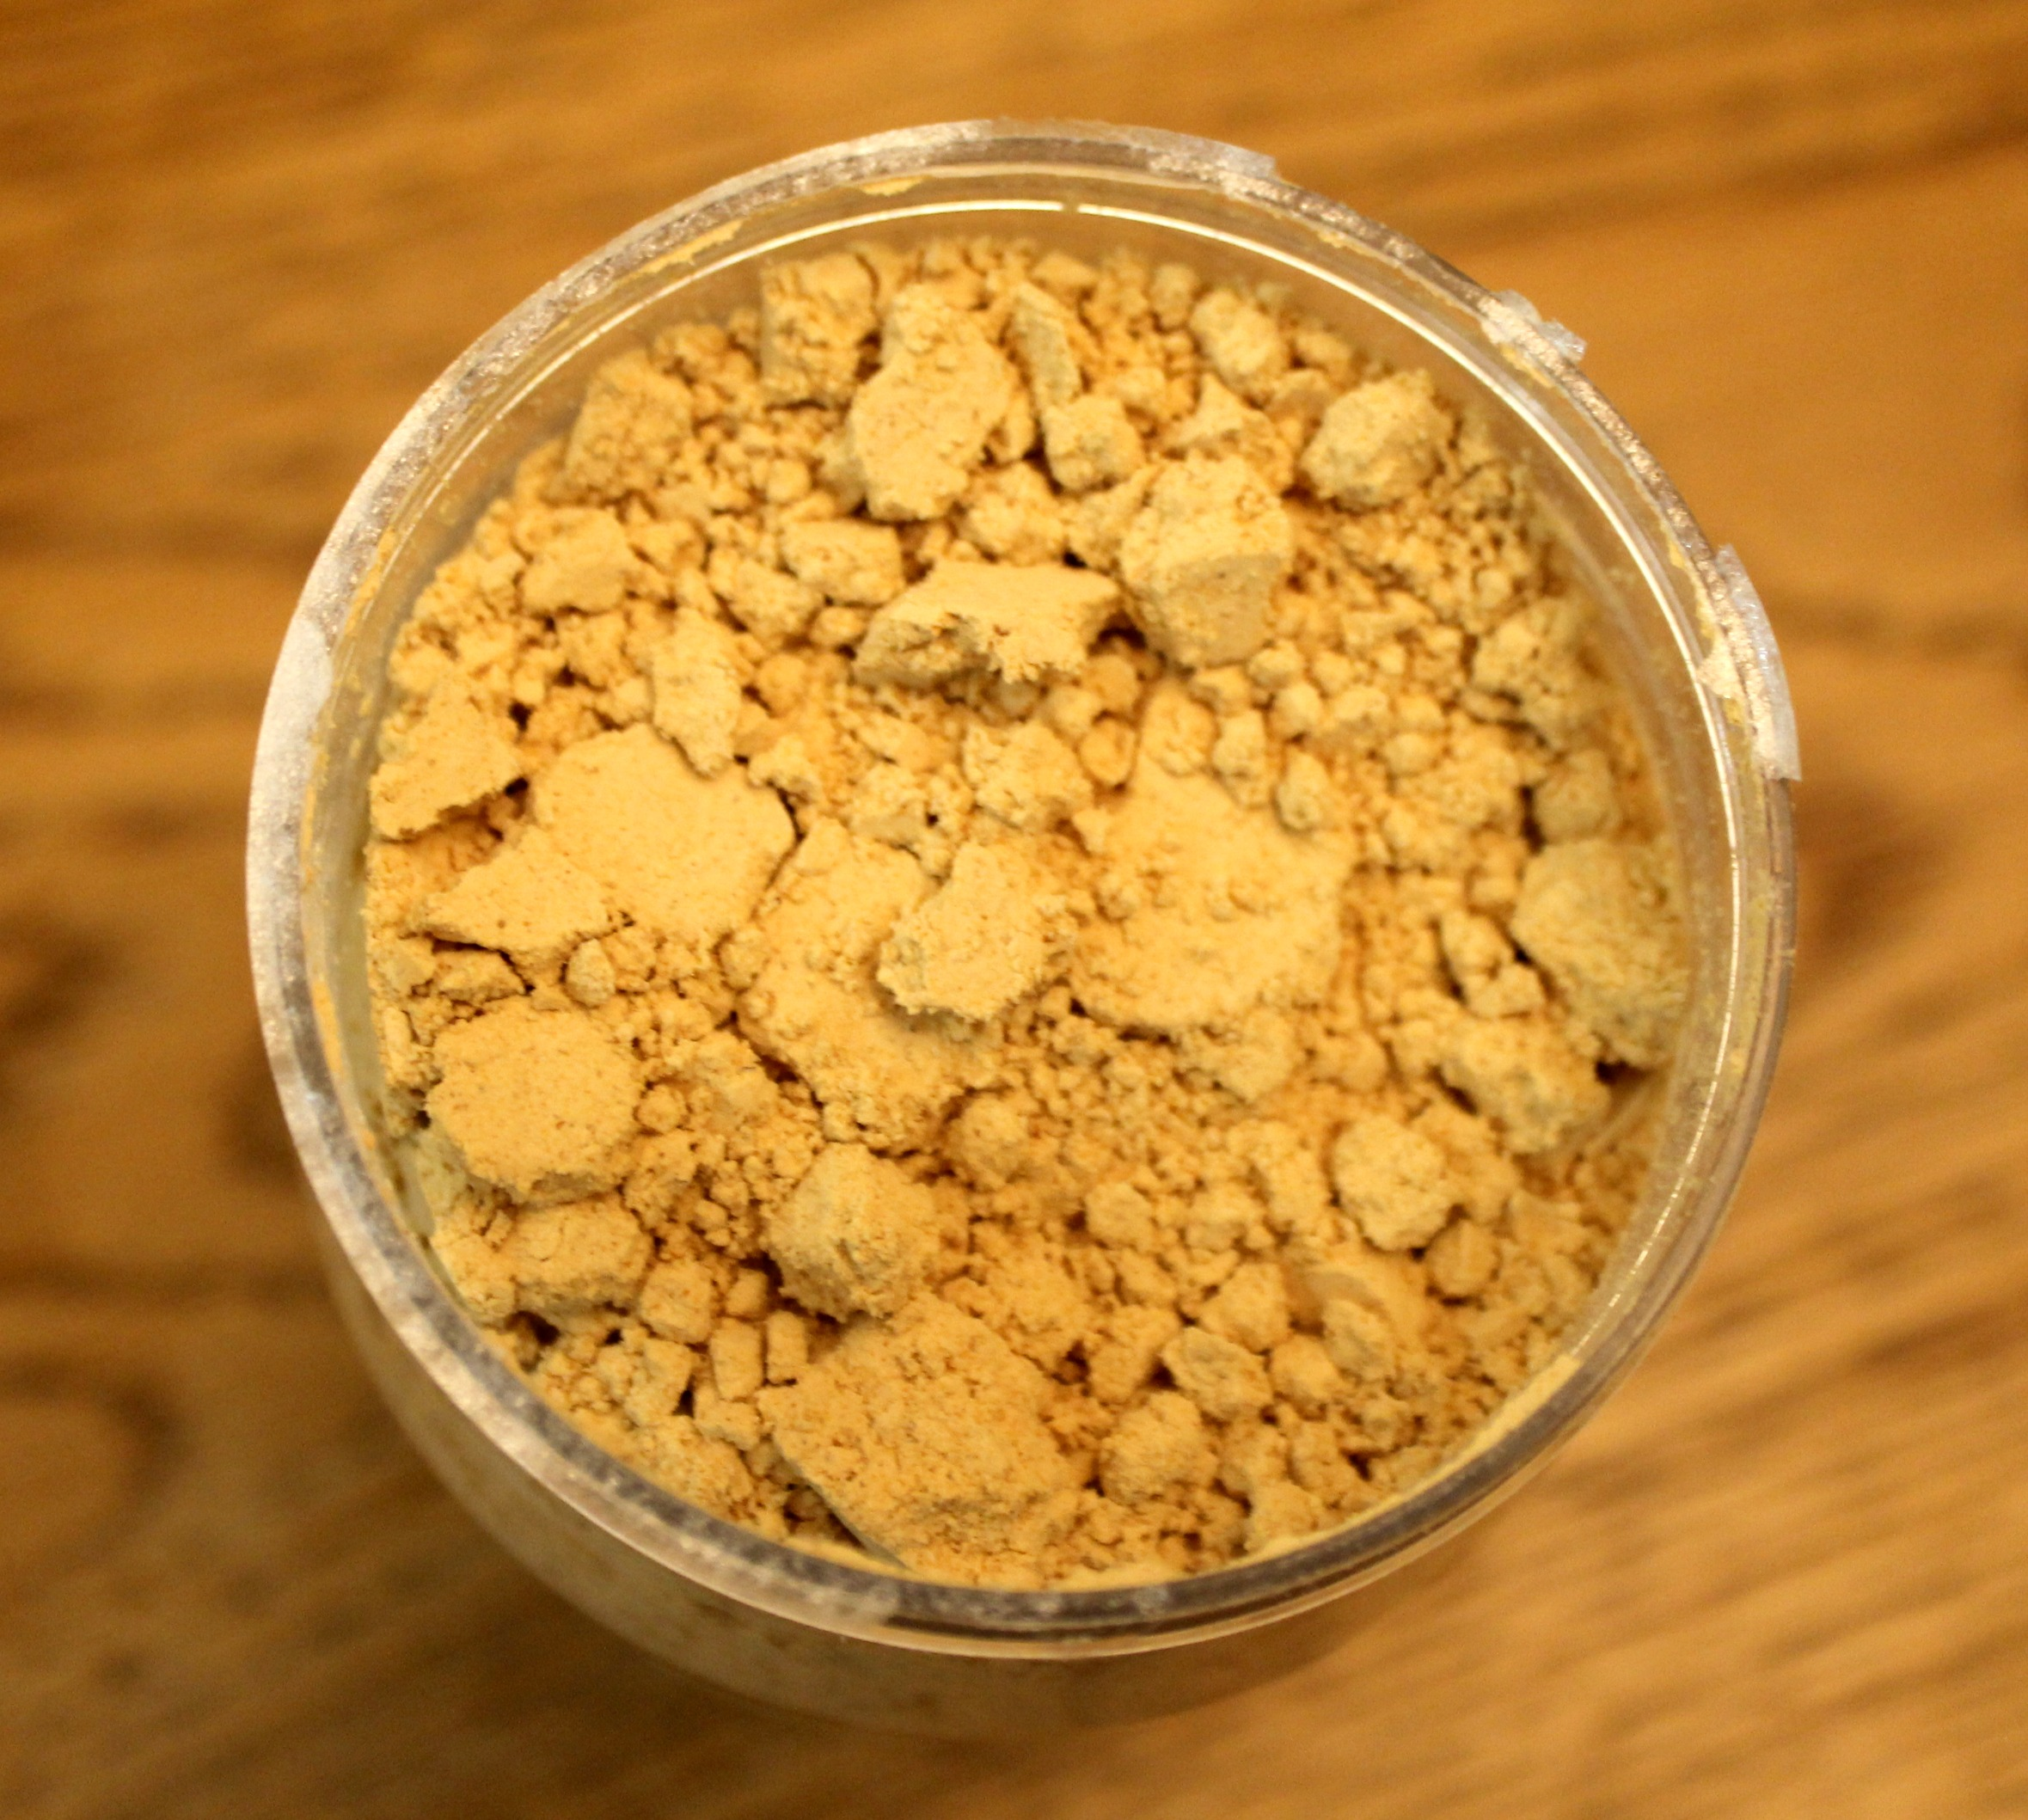 Tru-Nut Powdered PB Jar